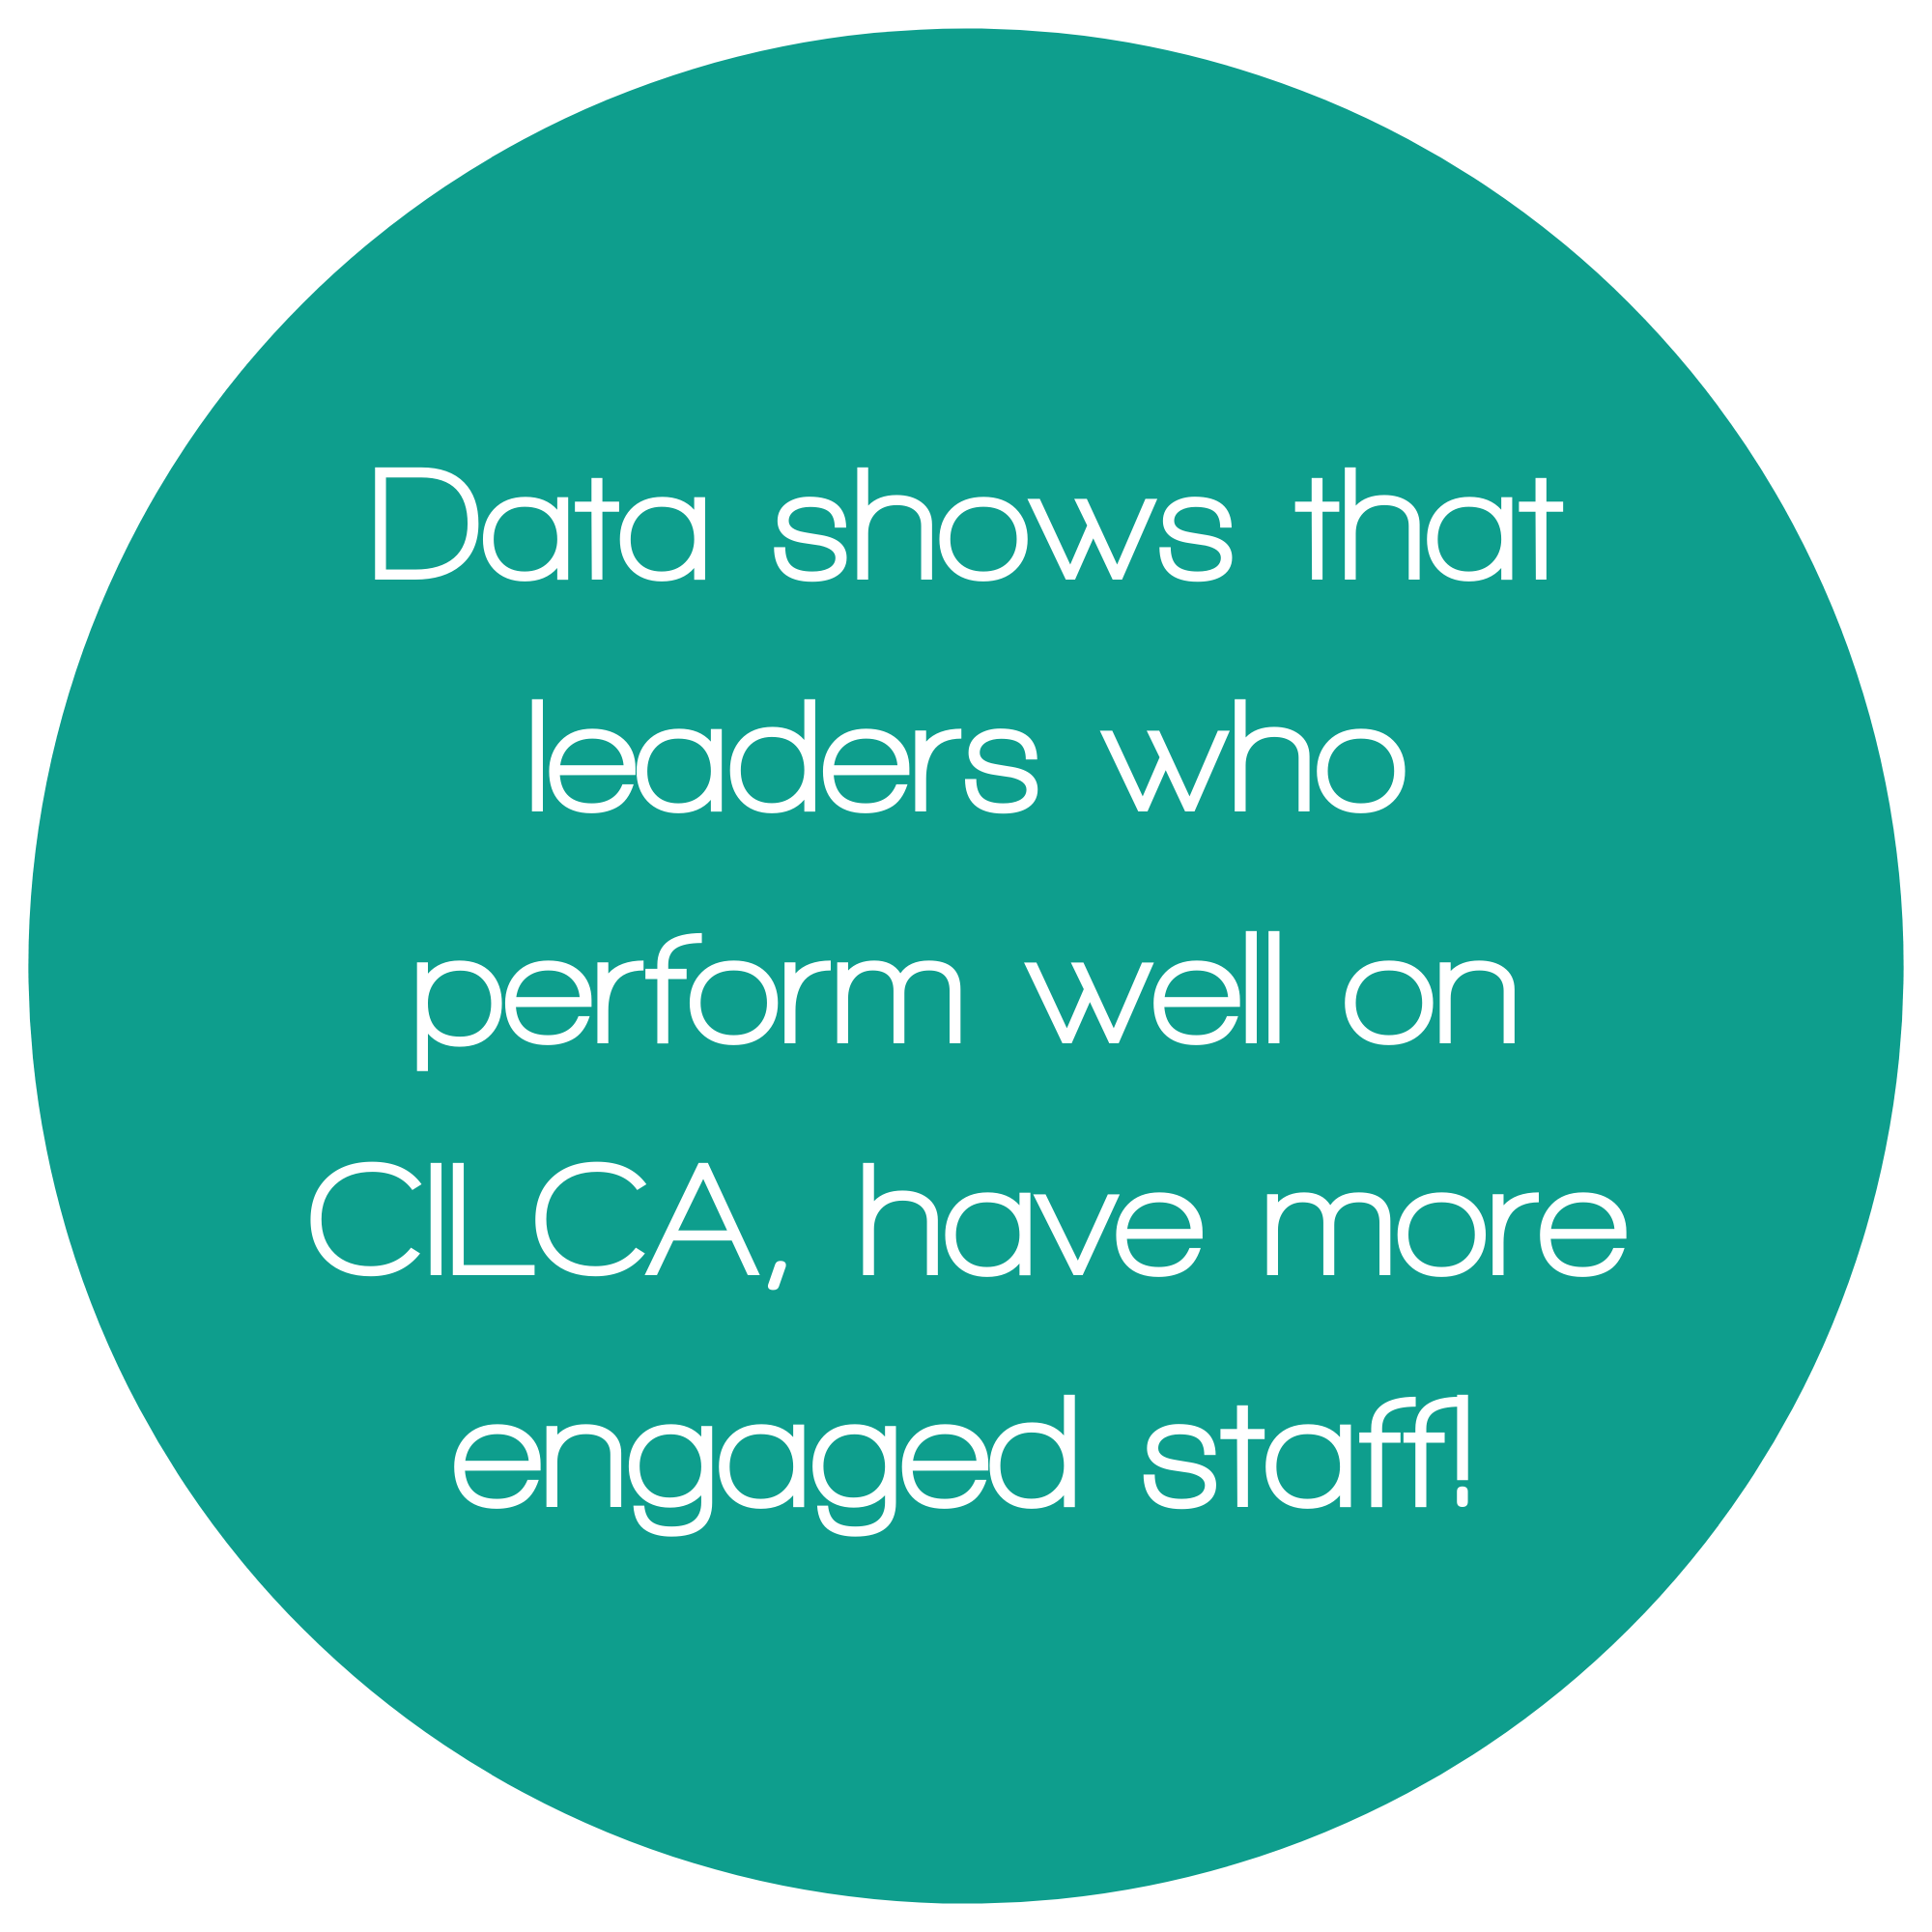 Data shows that leaders who perform well on CILCA have more engaged staff